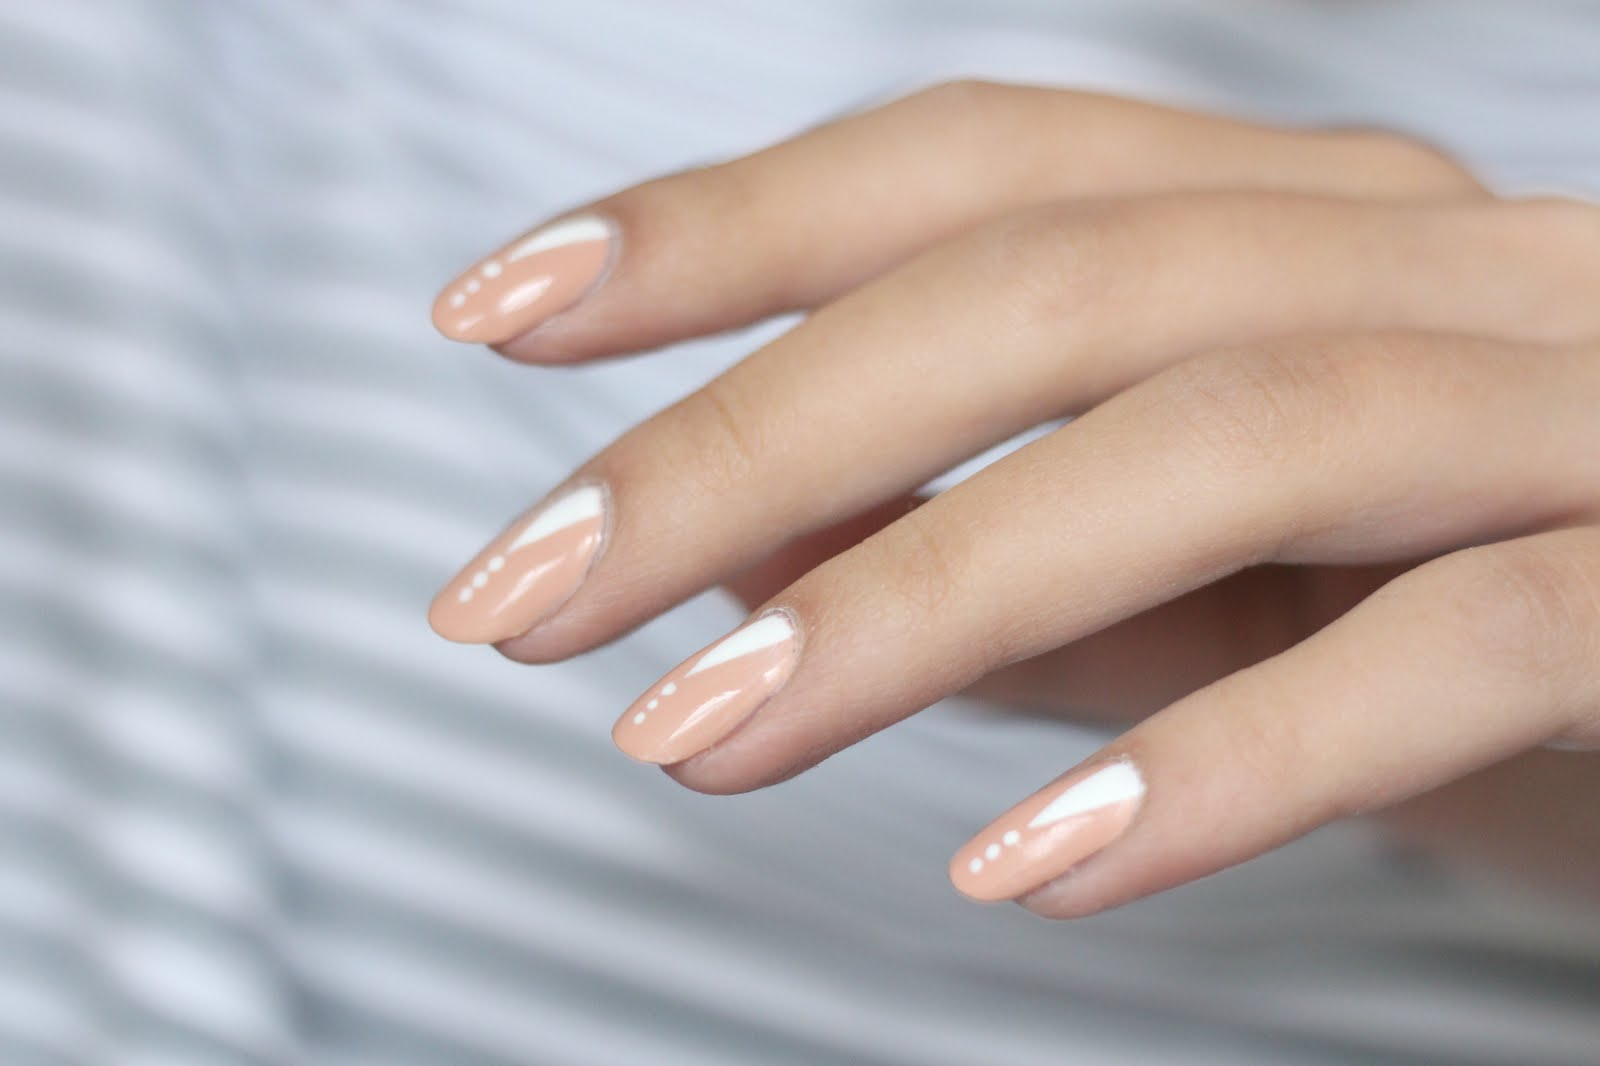 essie perennial chic, essie nailpolish, minimal nails, miminal nail design, different is better, german beauty blogs